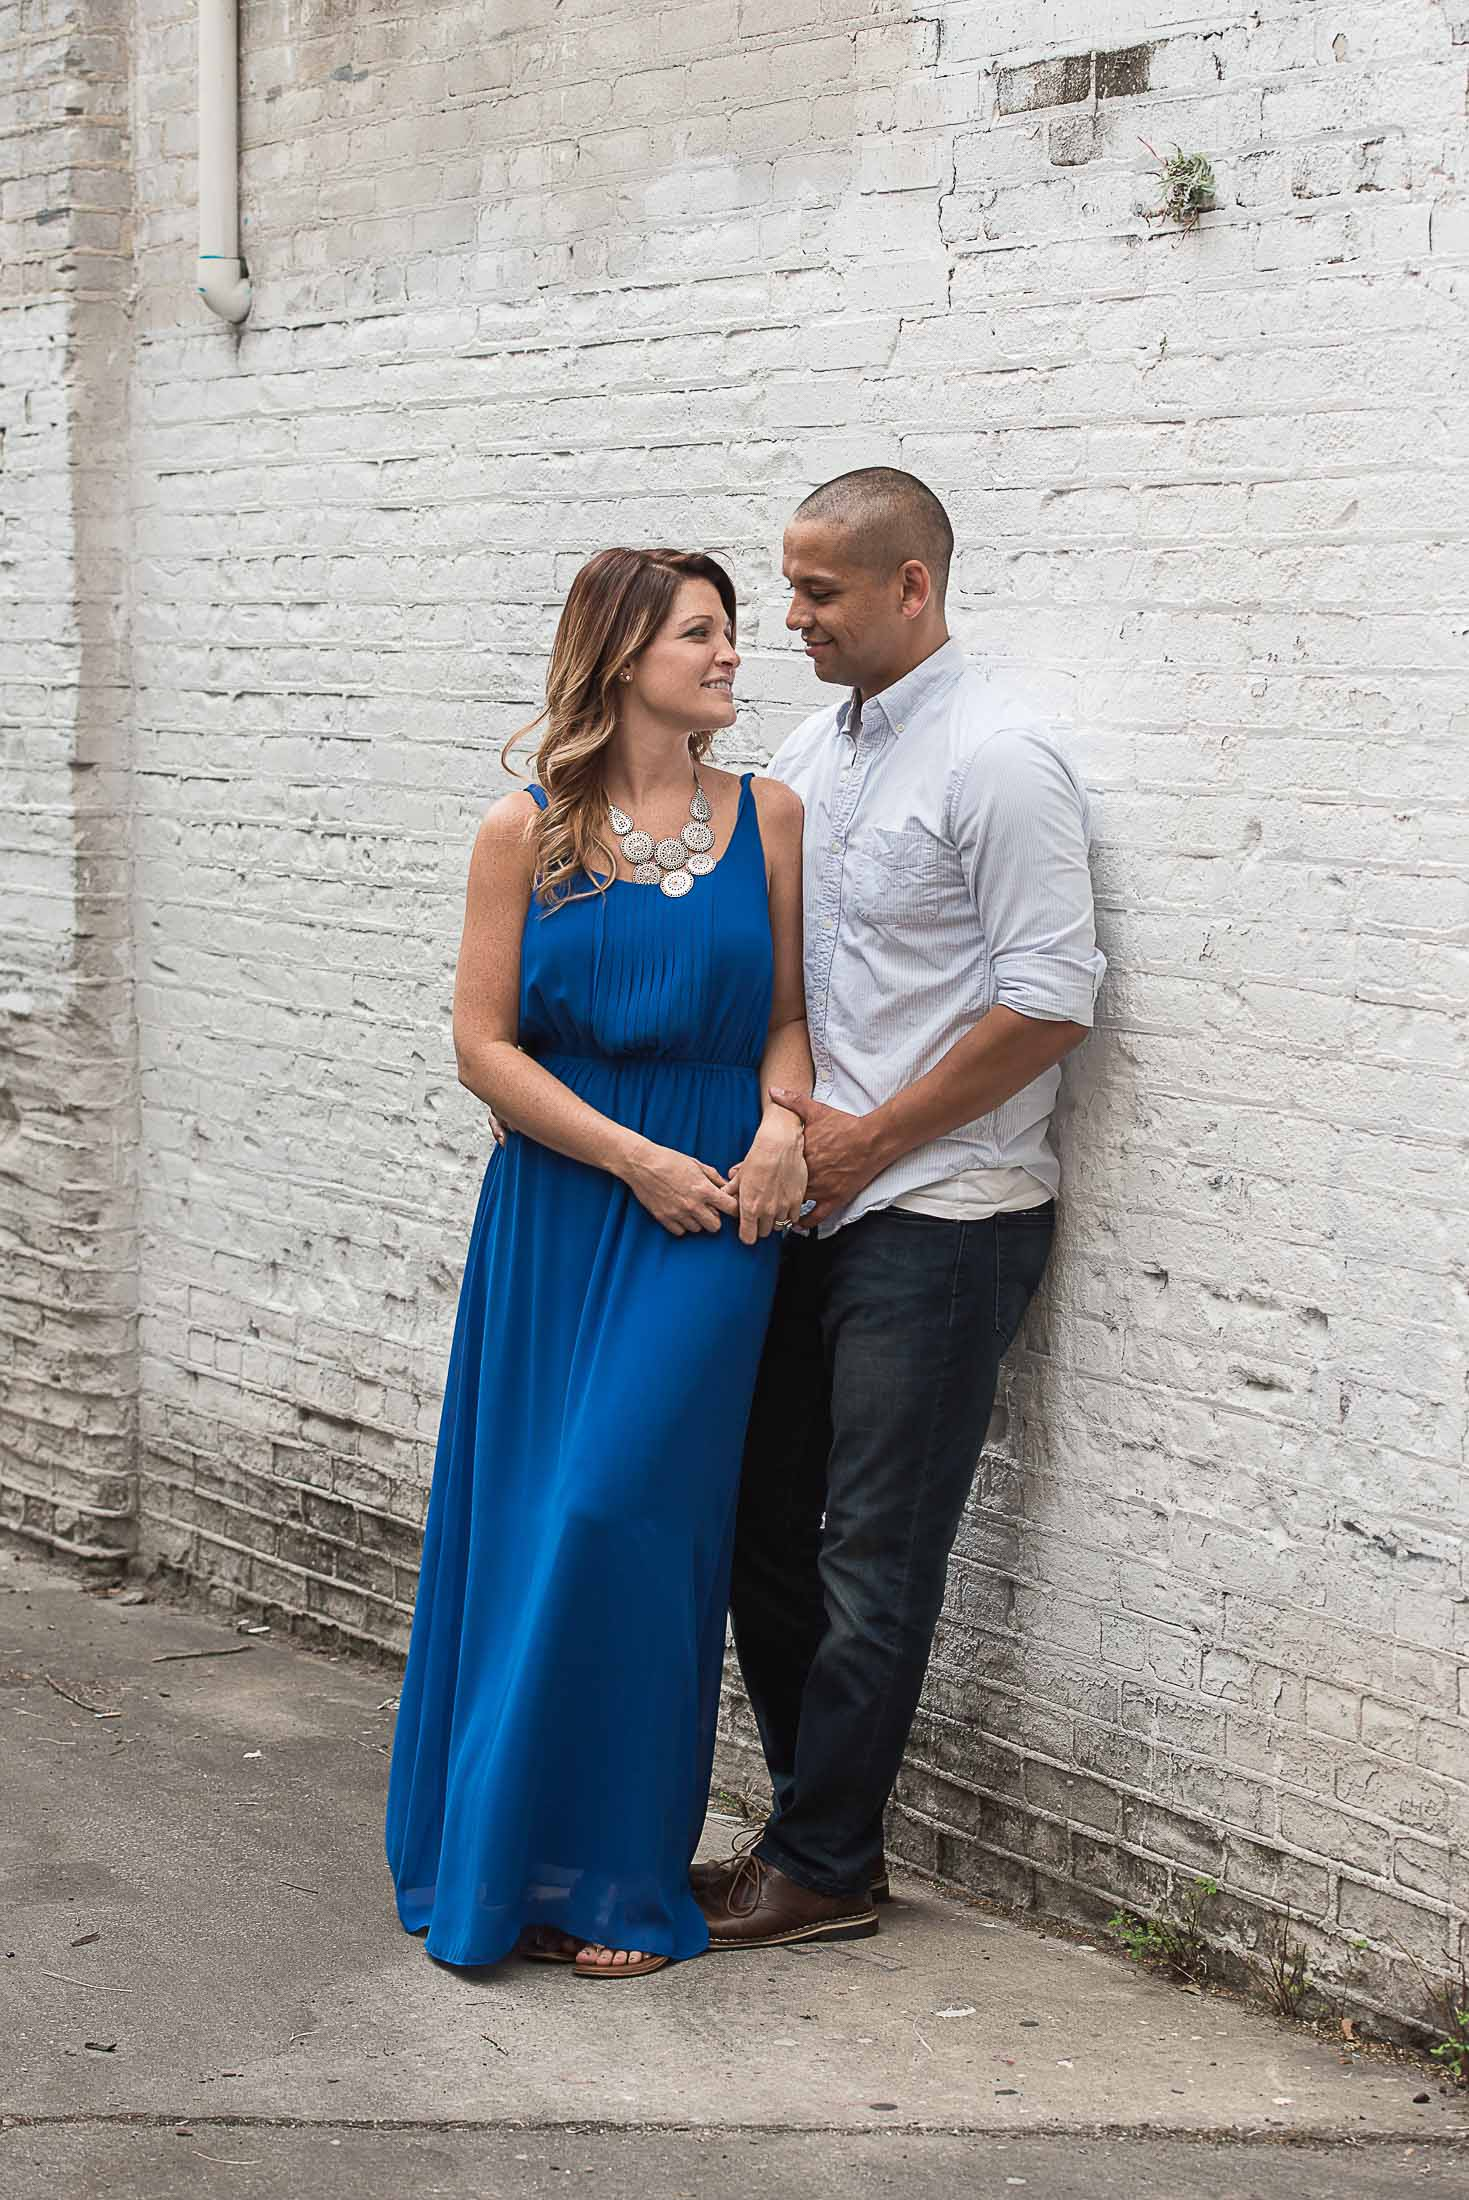 husband and wife in an alley in Ybor City